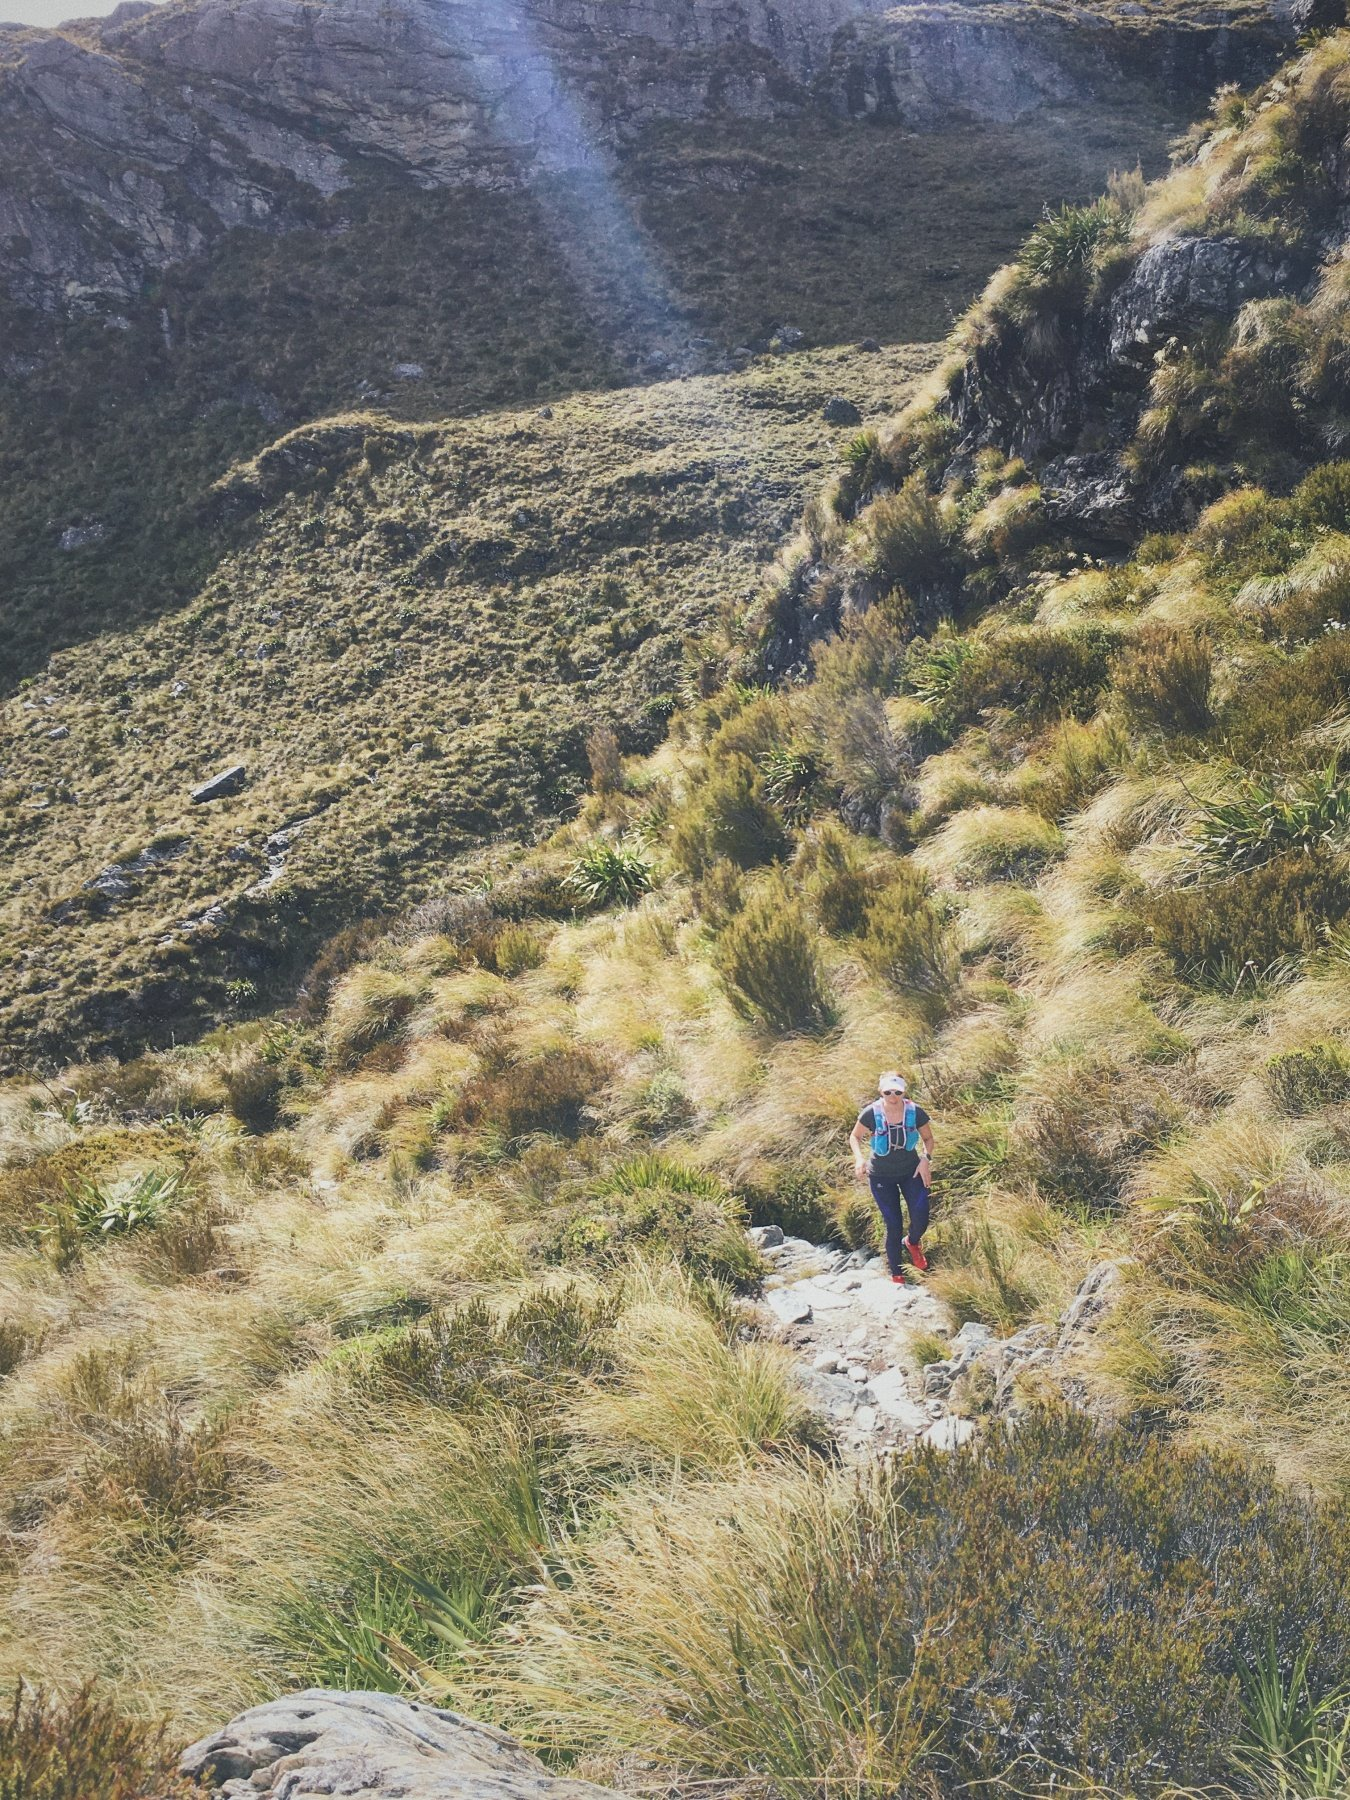 Attacking a climb along the Routeburn Track